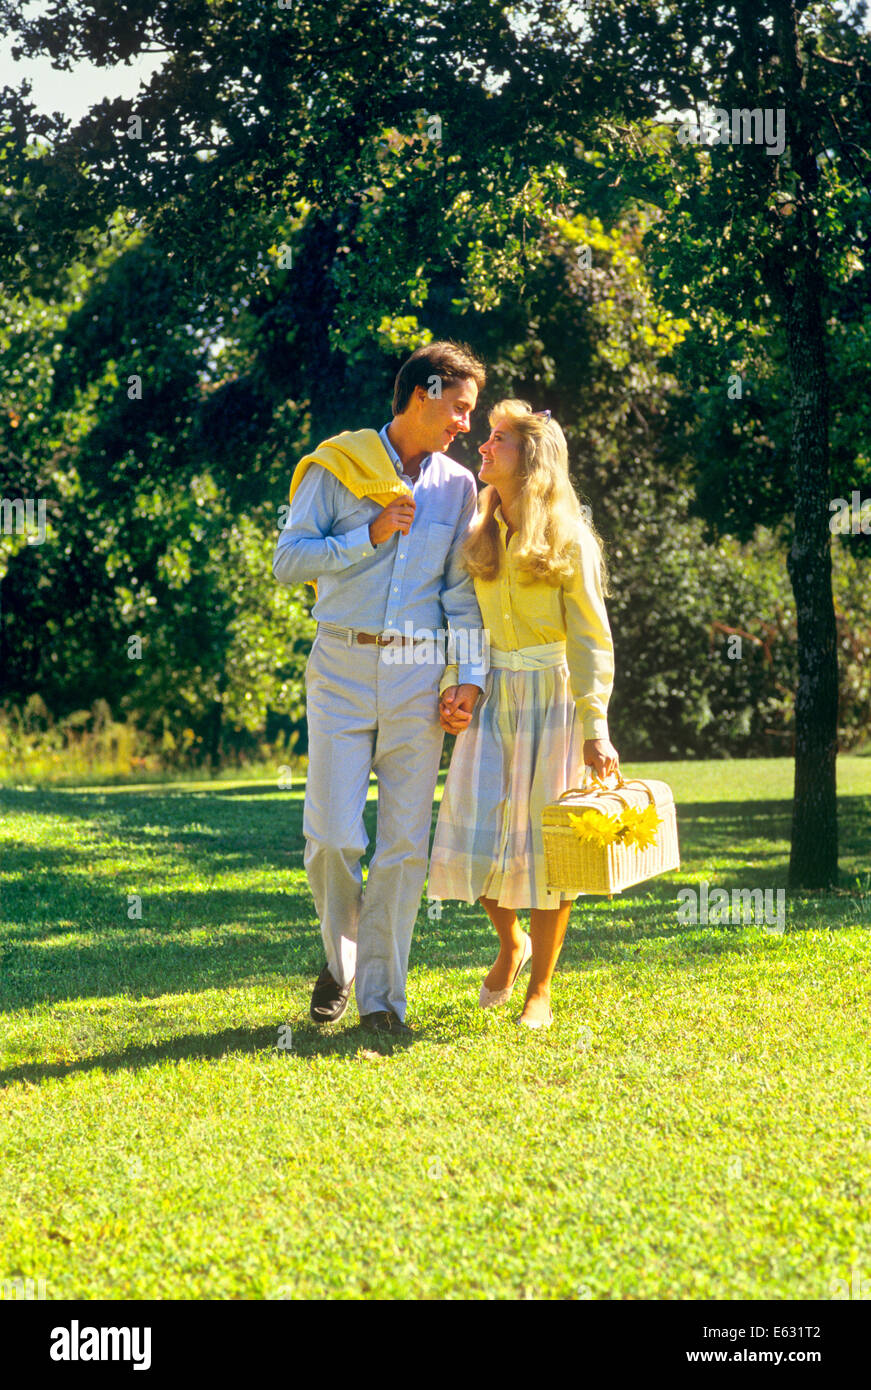 1980s YOUNG COUPLE WALKING OUTDOORS CARRYING PICNIC BASKET - Stock Image